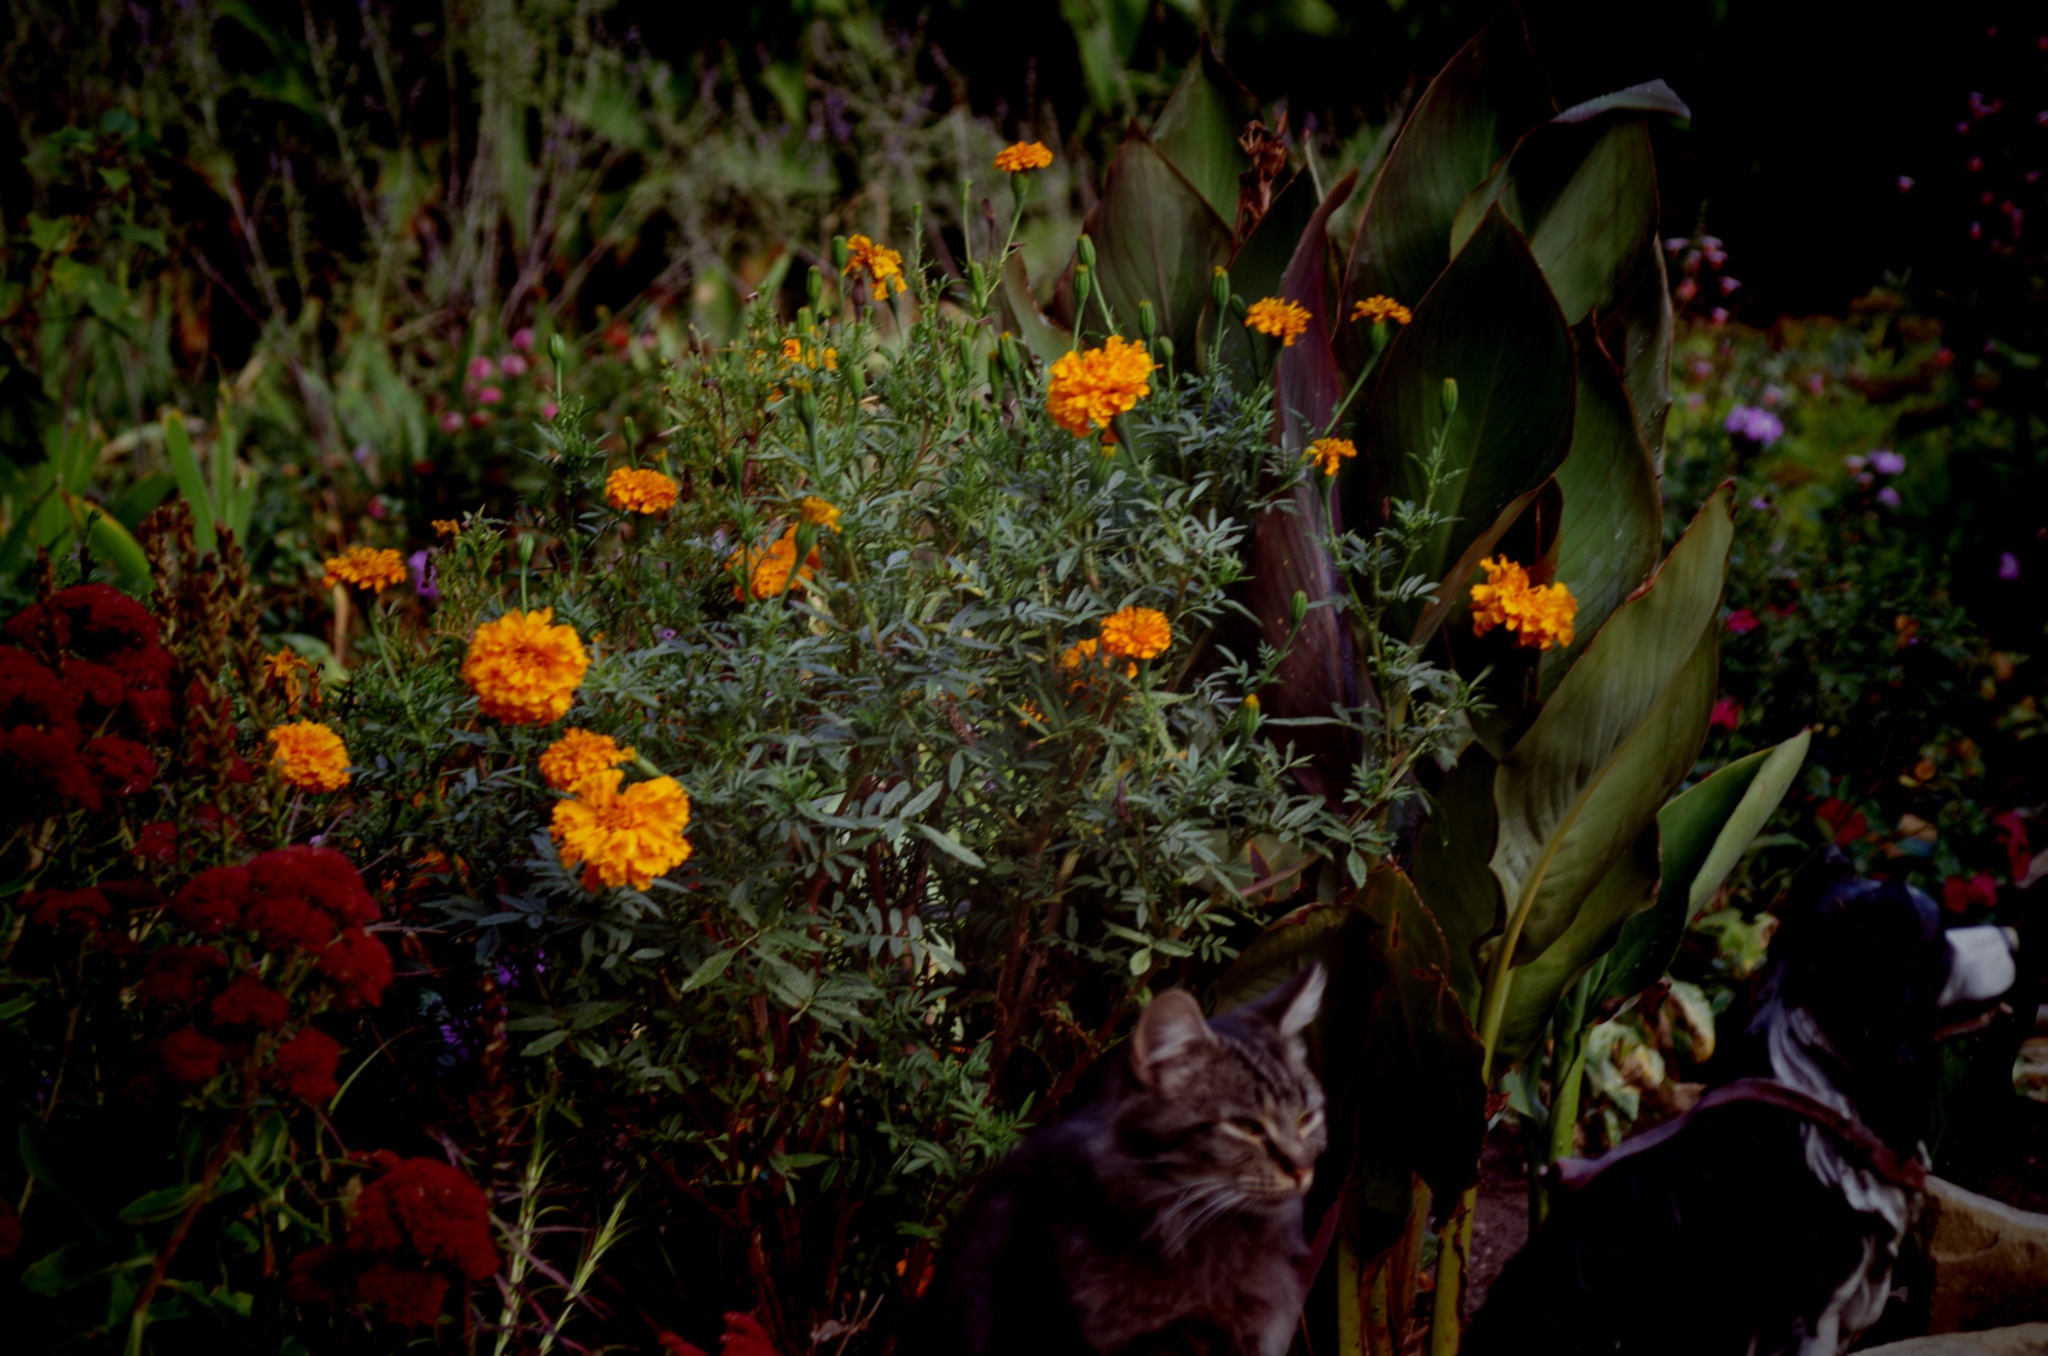 cat in the garden by david8900